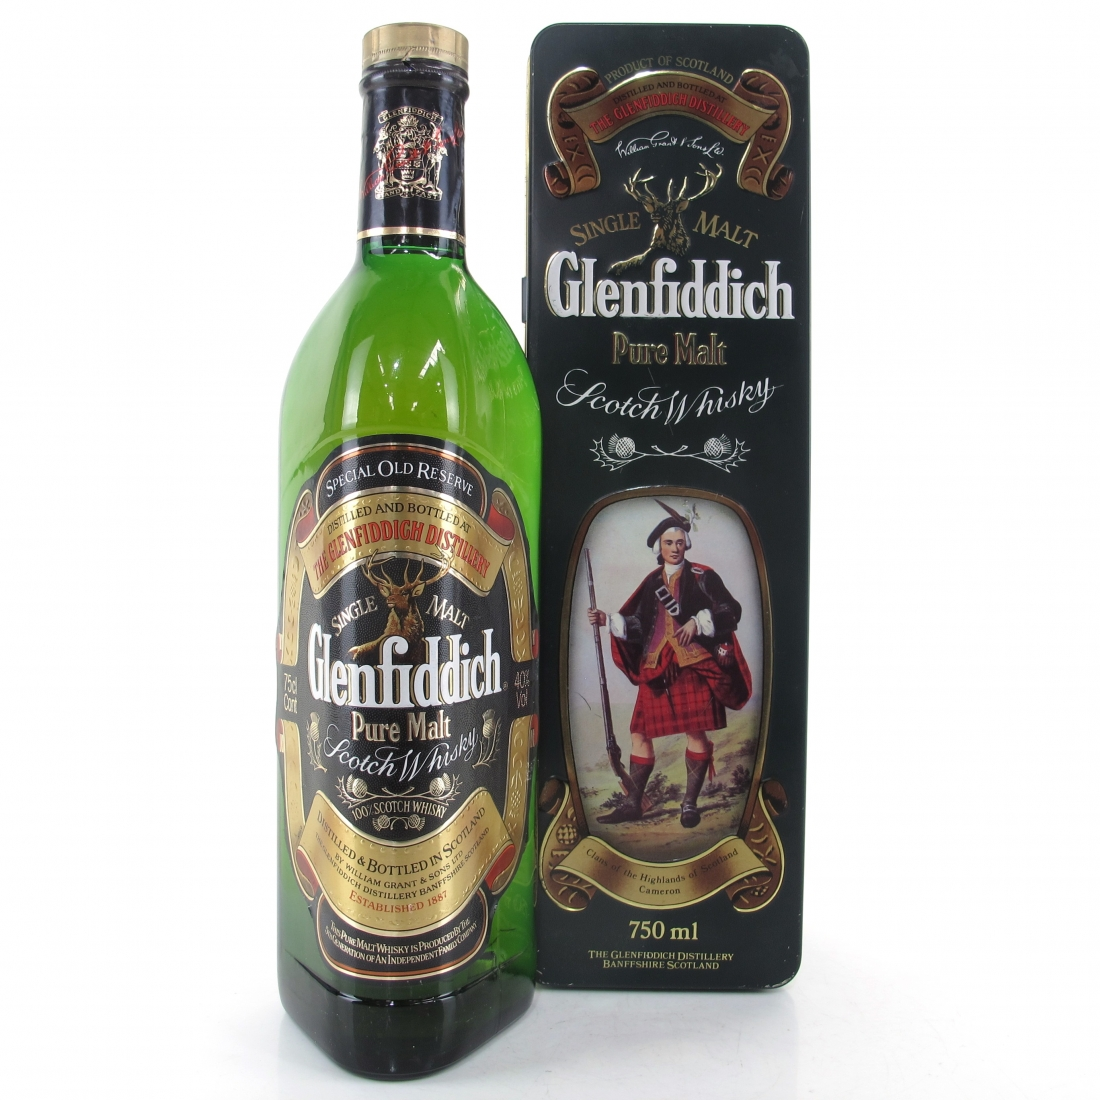 Glenfiddich Clans of the Highlands 1980s / Clan Cameron